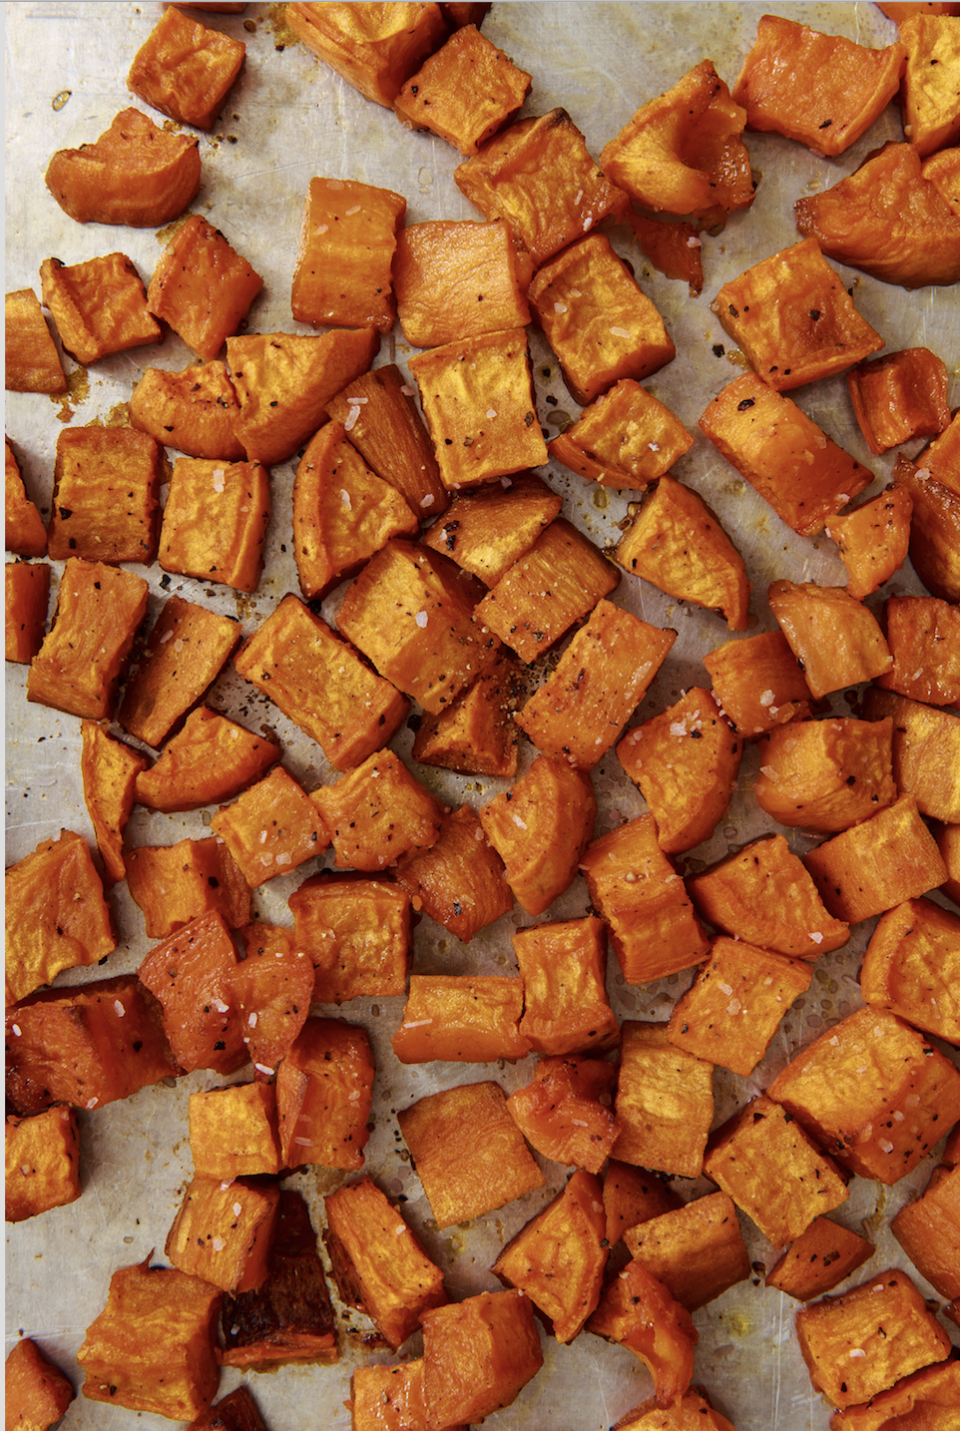 """<p><a href=""""https://www.delish.com/uk/cooking/recipes/g33977250/sweet-potato-recipes/"""" rel=""""nofollow noopener"""" target=""""_blank"""" data-ylk=""""slk:Sweet potatoes"""" class=""""link rapid-noclick-resp"""">Sweet potatoes</a> are one of the most versatile ingredients in the kitchen. They're amazing boiled, baked, sautéed, and fried. (ILY, <a href=""""https://www.delish.com/uk/cooking/recipes/a31012172/air-fryer-sweet-potato-recipe/"""" rel=""""nofollow noopener"""" target=""""_blank"""" data-ylk=""""slk:sweet potato fries"""" class=""""link rapid-noclick-resp"""">sweet potato fries</a>.) But one of the easiest and most useful ways to cook sweet potatoes is to roast them. </p><p>Get the <a href=""""https://www.delish.com/uk/cooking/recipes/a30311290/how-to-roast-sweet-potatoes/"""" rel=""""nofollow noopener"""" target=""""_blank"""" data-ylk=""""slk:Roasted Sweet Potatoes"""" class=""""link rapid-noclick-resp"""">Roasted Sweet Potatoes</a> recipe.</p>"""